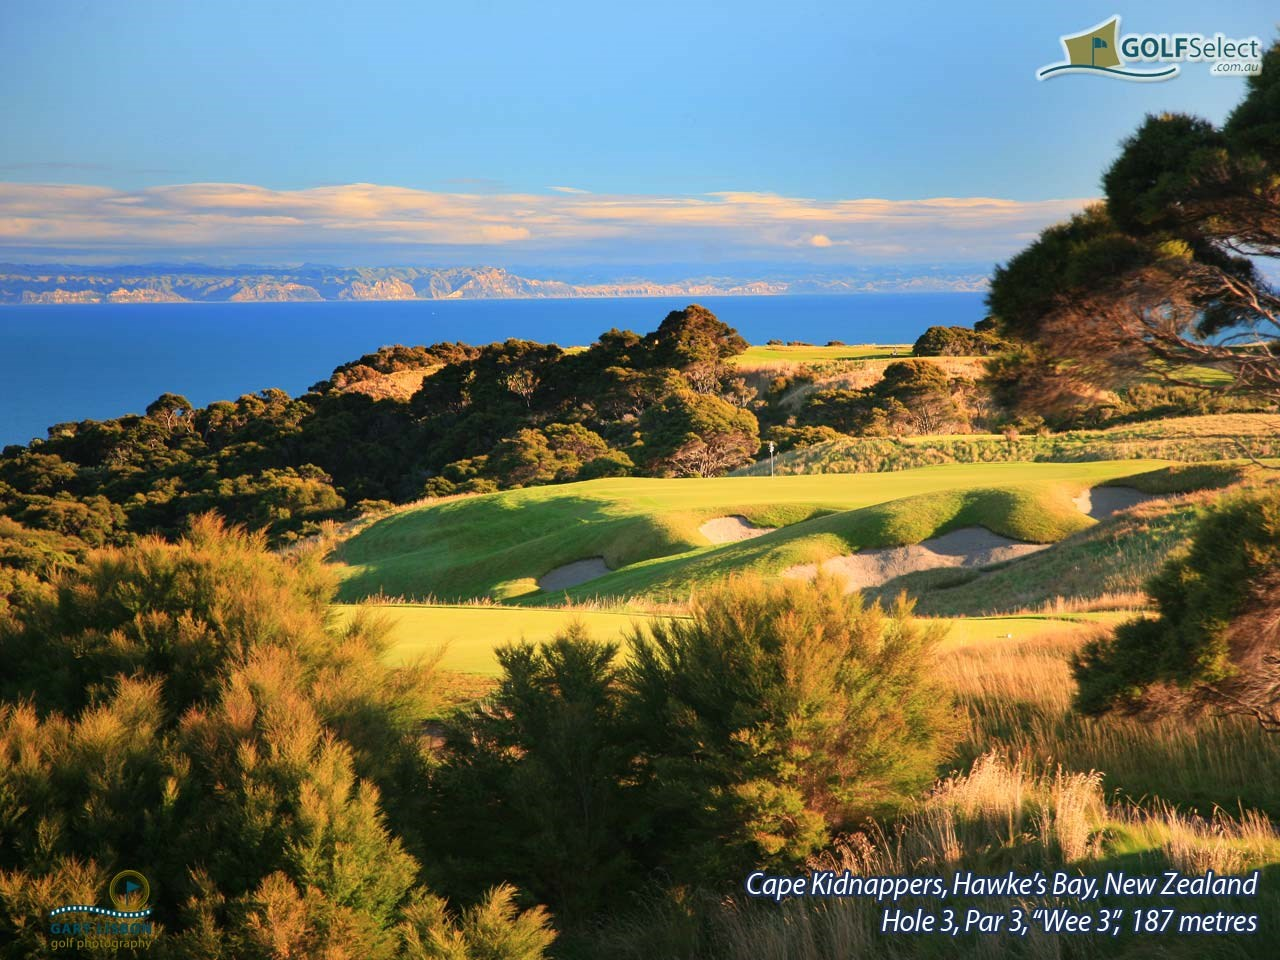 "Cape Kidnappers Golf Course Hole 3,""Par 3 ""Wee 3"", 187 metres"